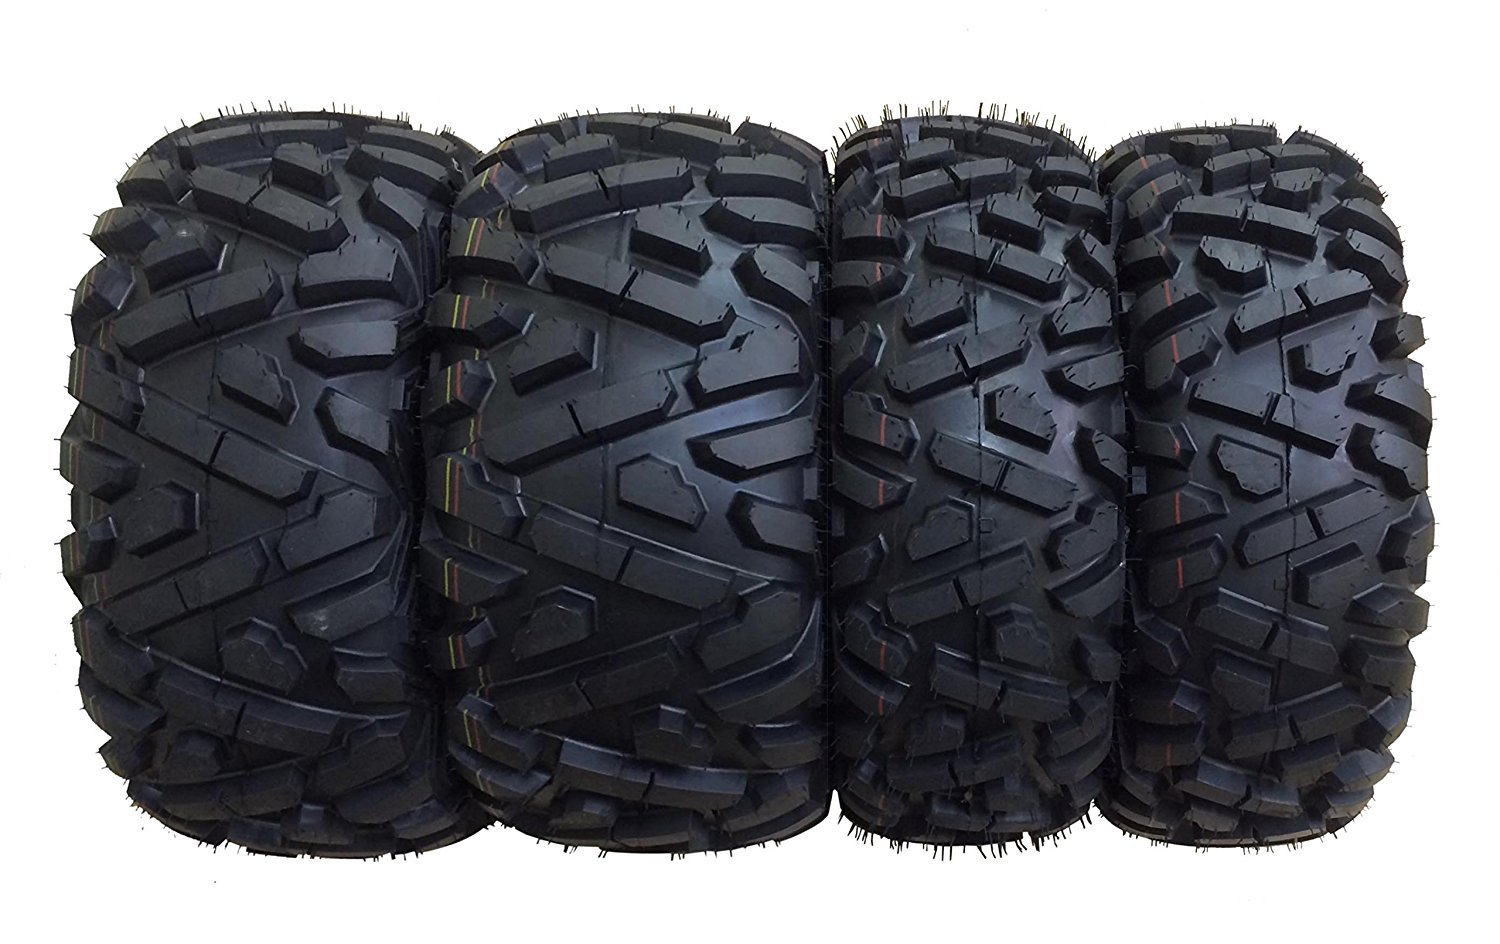 Set of 4 WANDA ATV/UTV Tires 25X8-12 25X10-12 for 2002-2014 POLARIS  SPORTSMAN 400/700